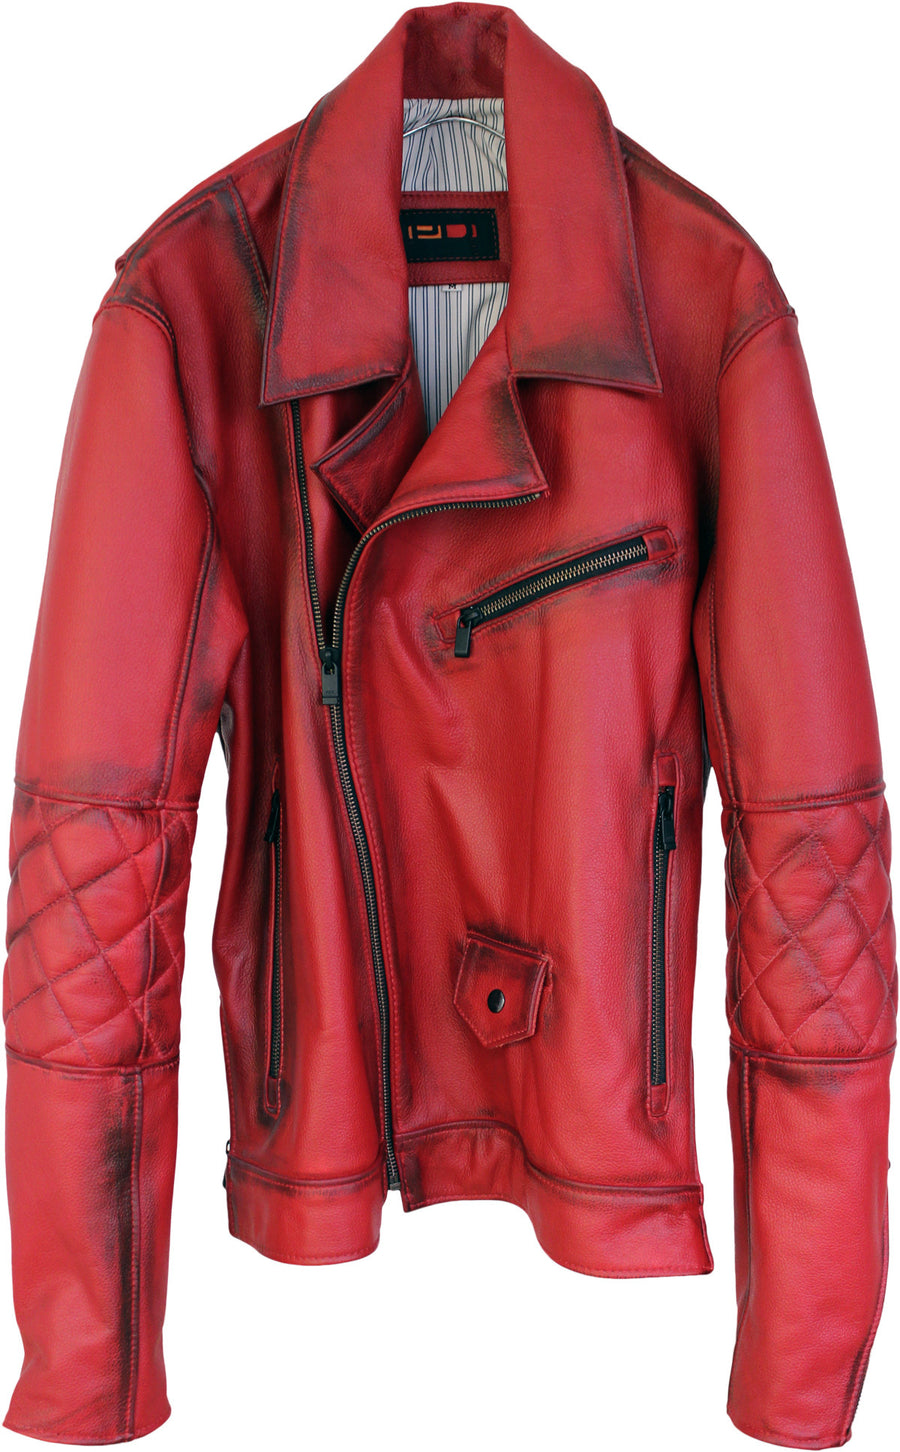 MAG AX Leather Jacket Napa - Red - Hand Burnished - Limited